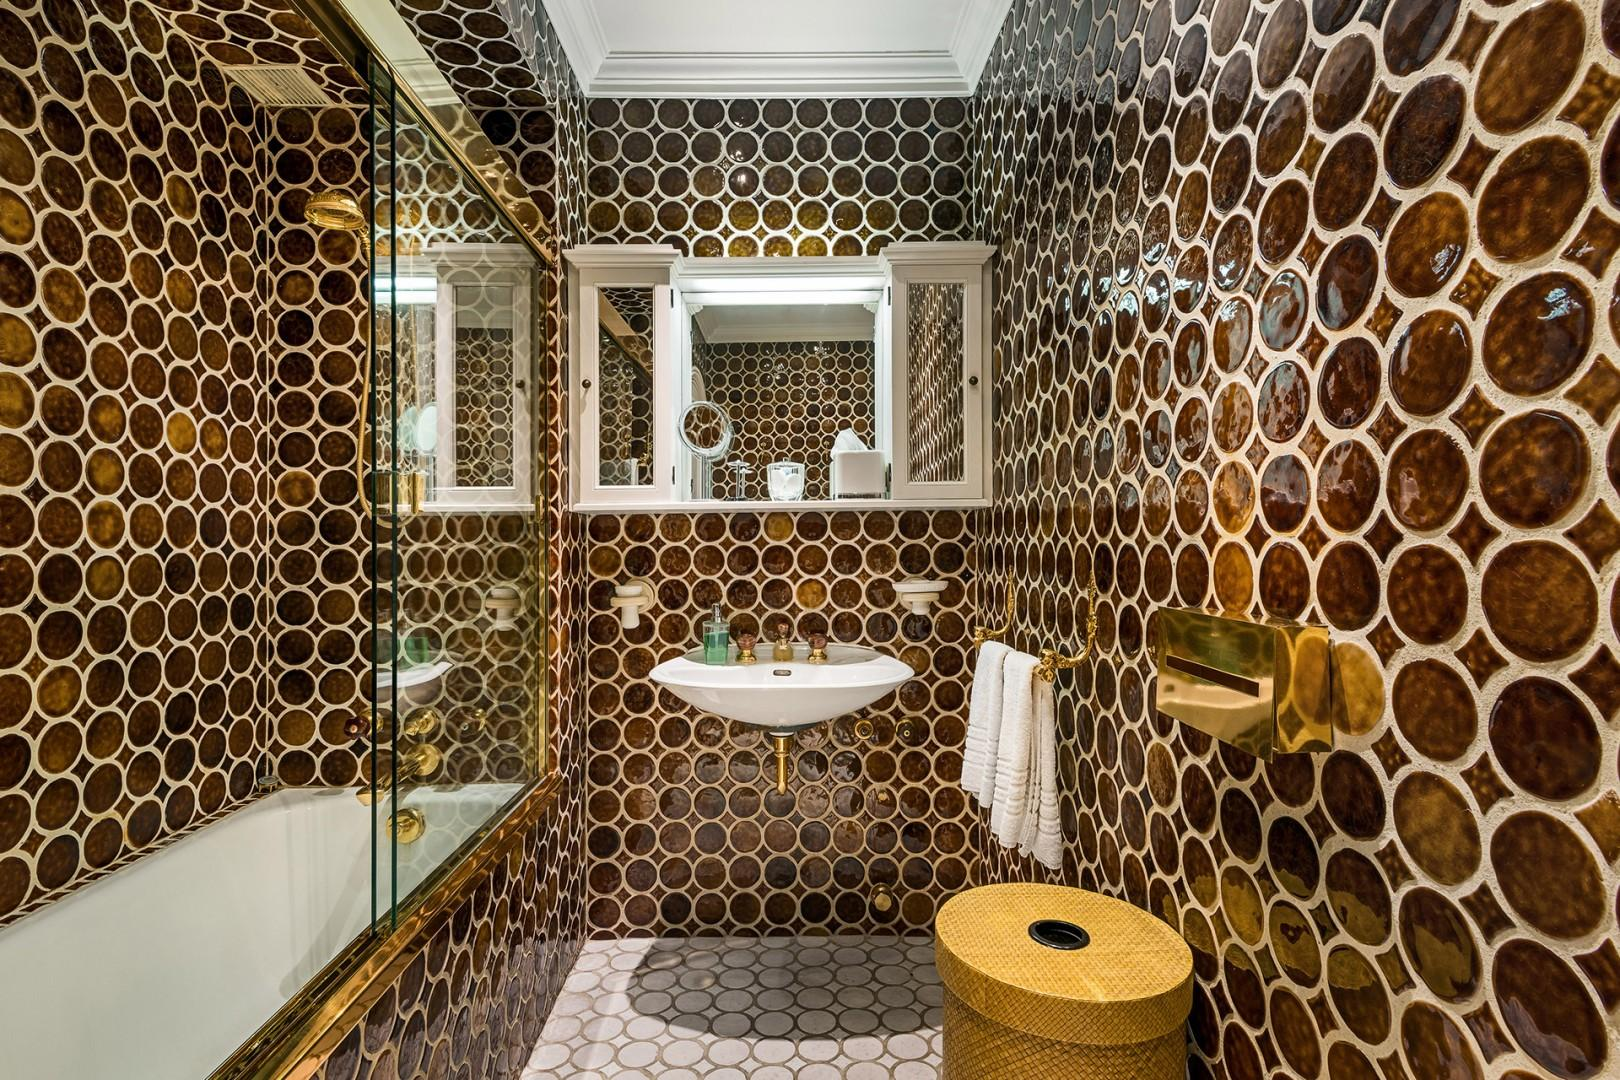 The designer bathroom 2 features one-of-a-kind tiling.